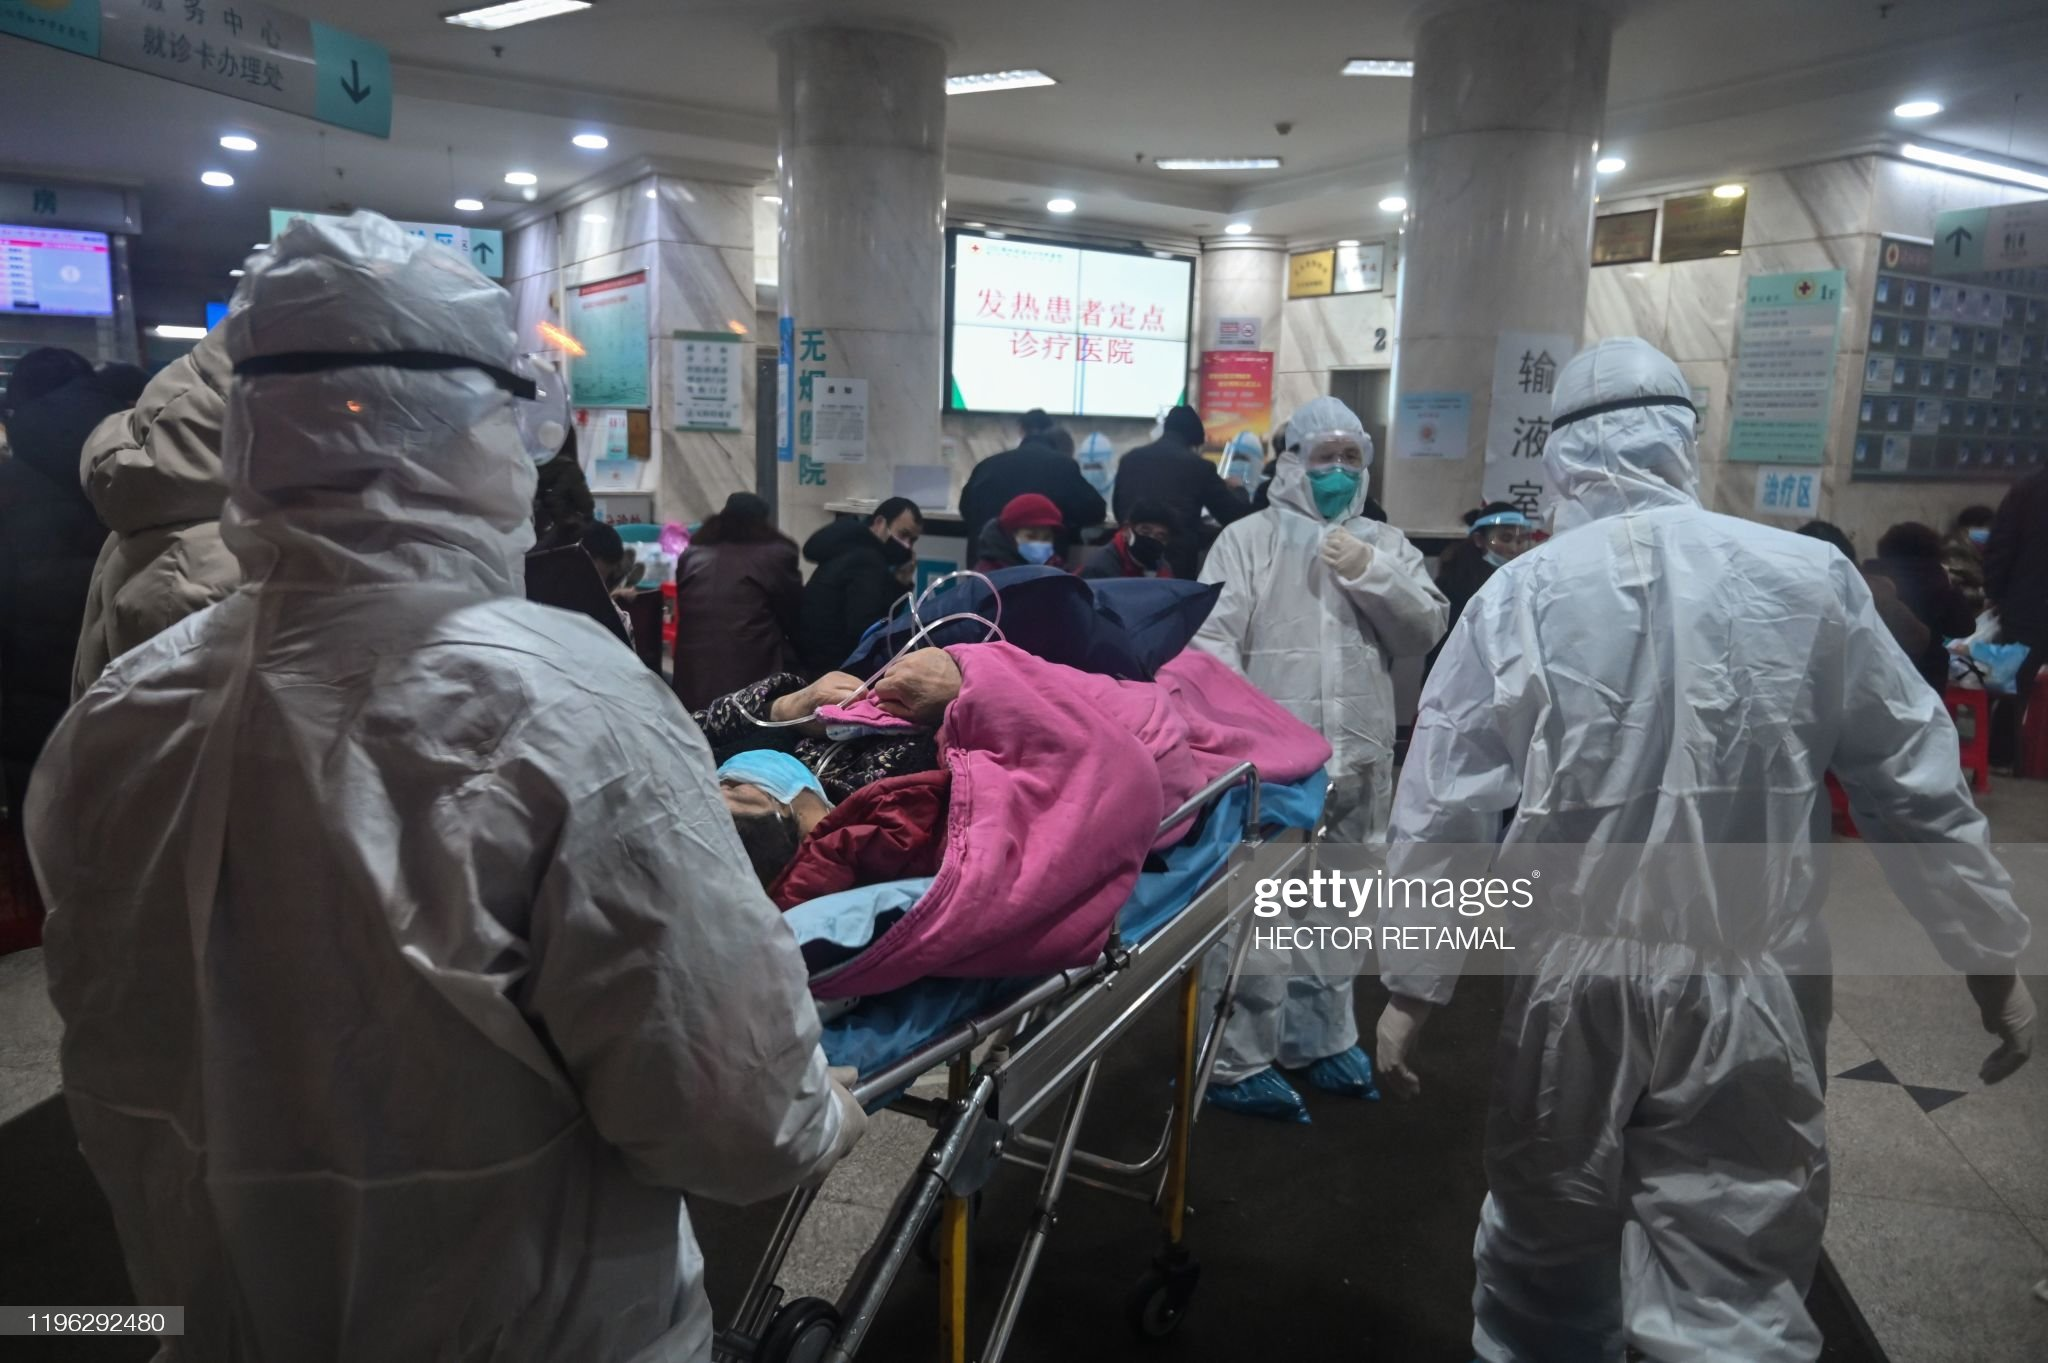 TOPSHOT-CHINA-HEALTH-VIRUS : News Photo